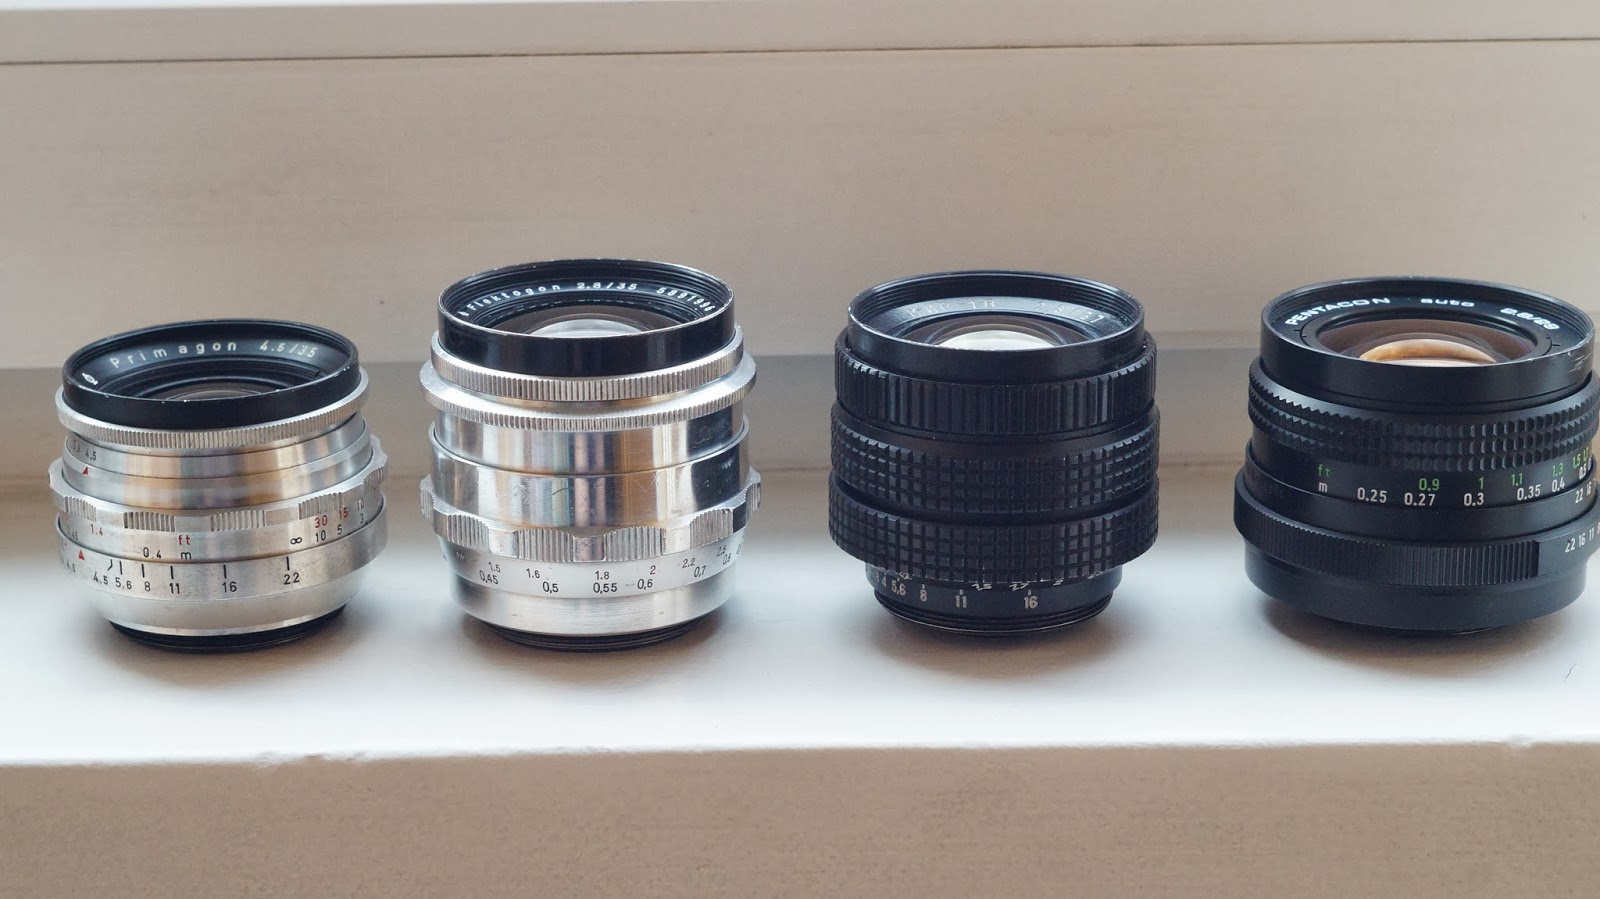 Test wide-angle lenses. Primagon 35/4.5 vs PENTACON 2,8/29 vs Mir-1B 37mm F2.8 vs Flektogon 35mm f2.8